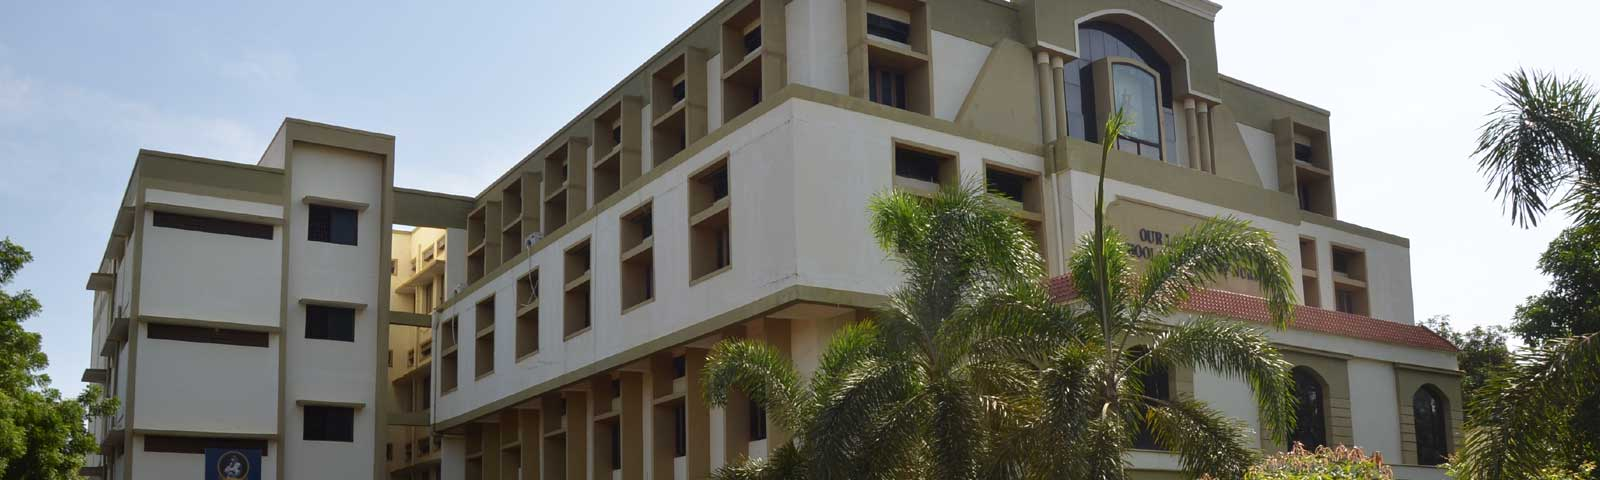 Our Lady of Health School and College of Nursing, Thanjavur Image